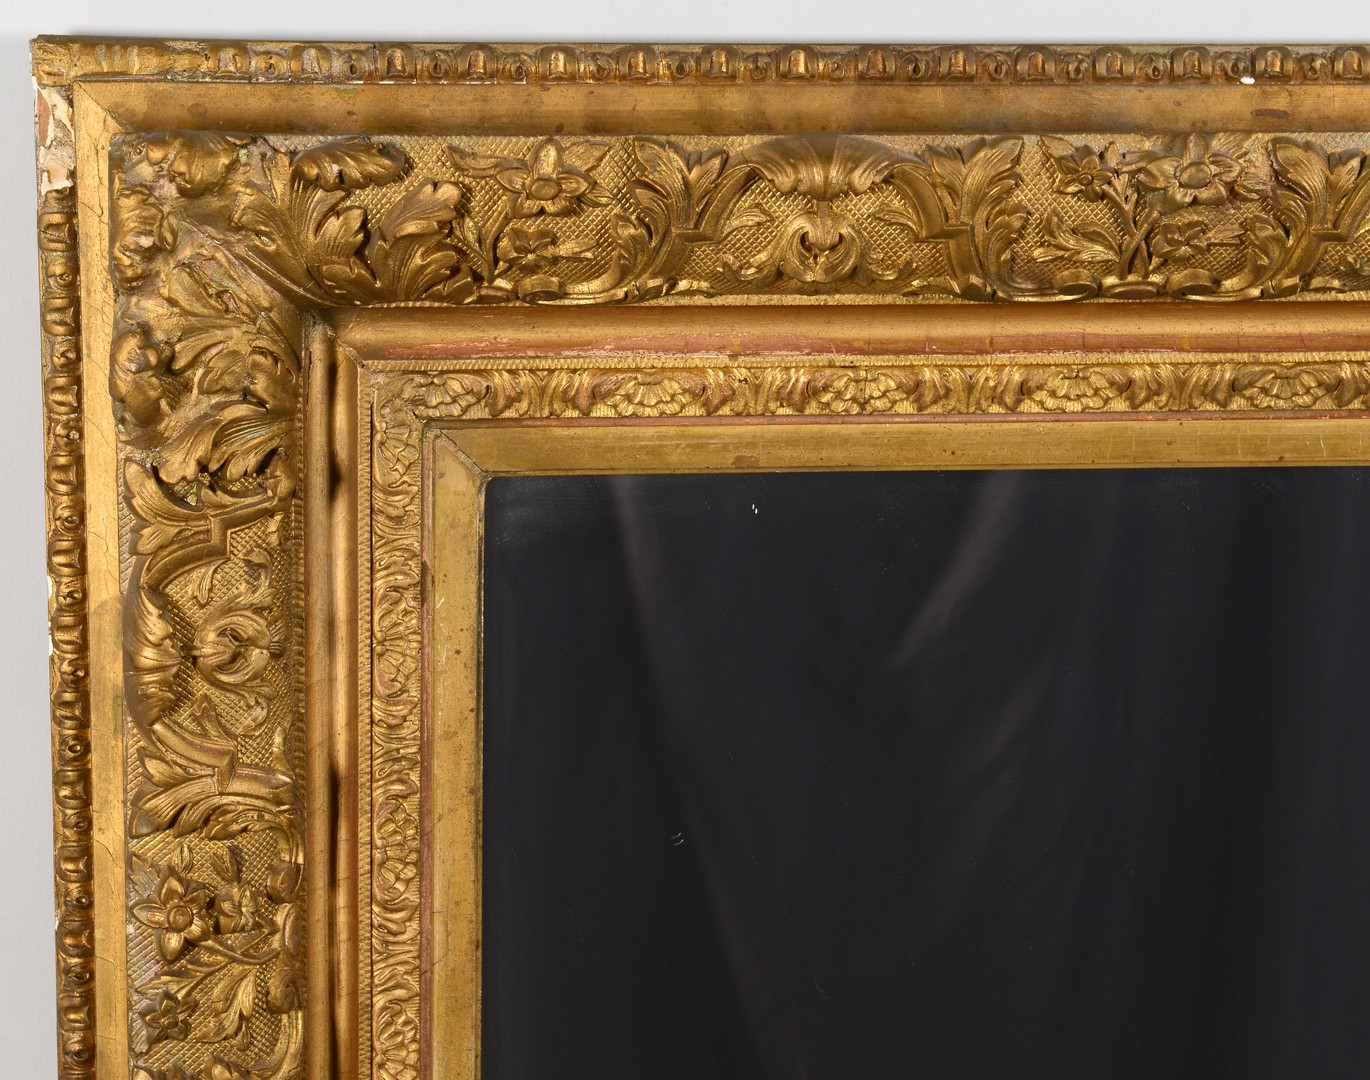 Lot 758: 19th Century Giltwood Mirror or Looking Glass